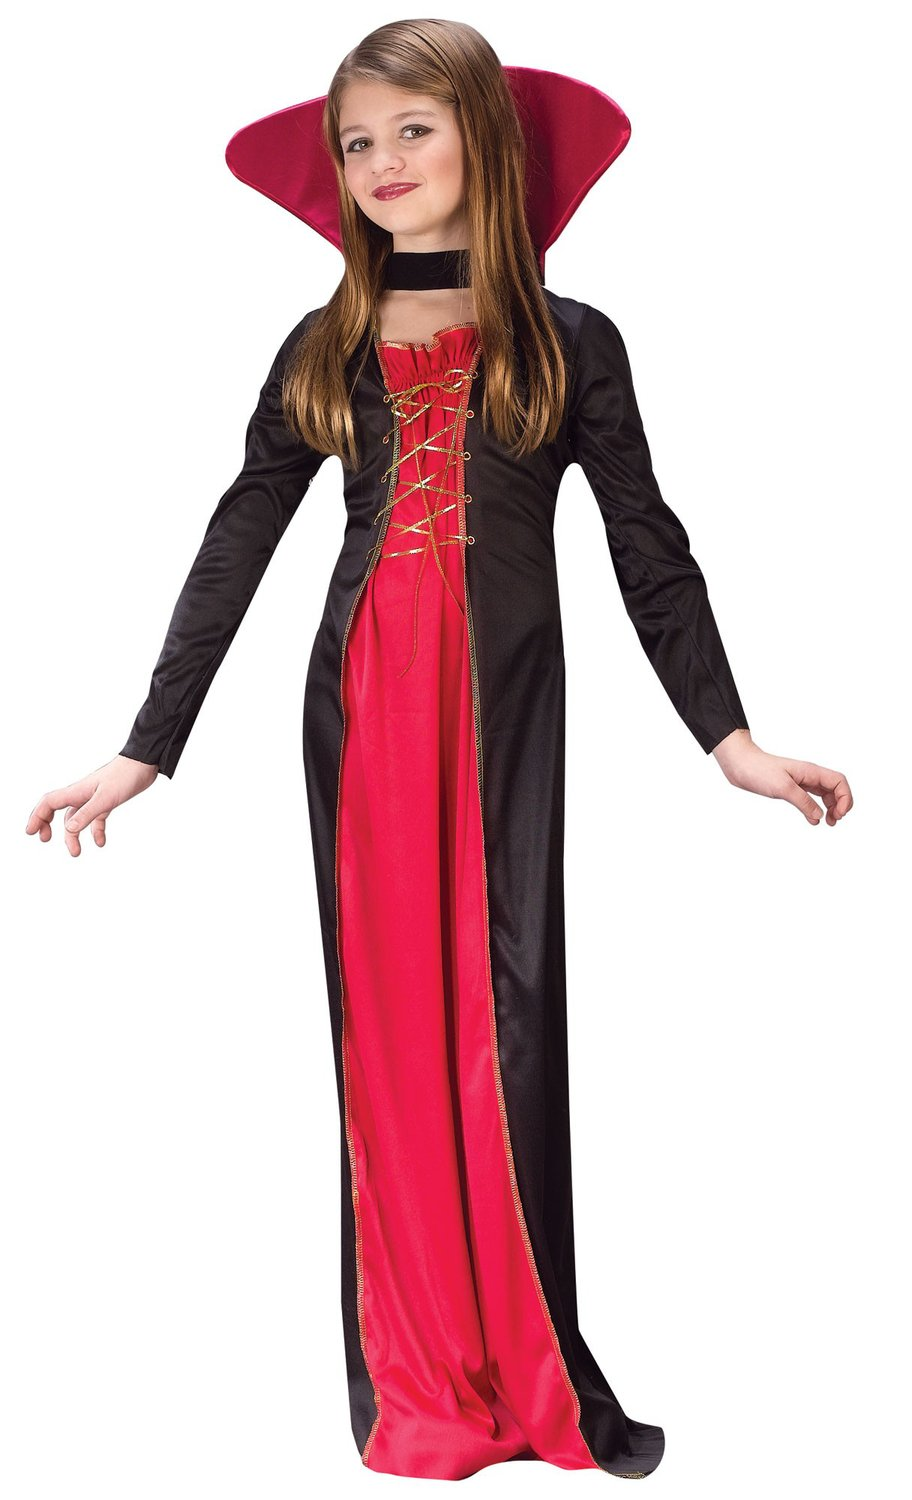 Apr 15, · How to Make a Vampire Costume. Three Methods: Picking Vampire Clothing Applying Vampire Makeup Wearing Vampire Accessories Community Q&A One of the scariest and most popular costumes for Halloween or dress-up parties is a vampire costume%(12).